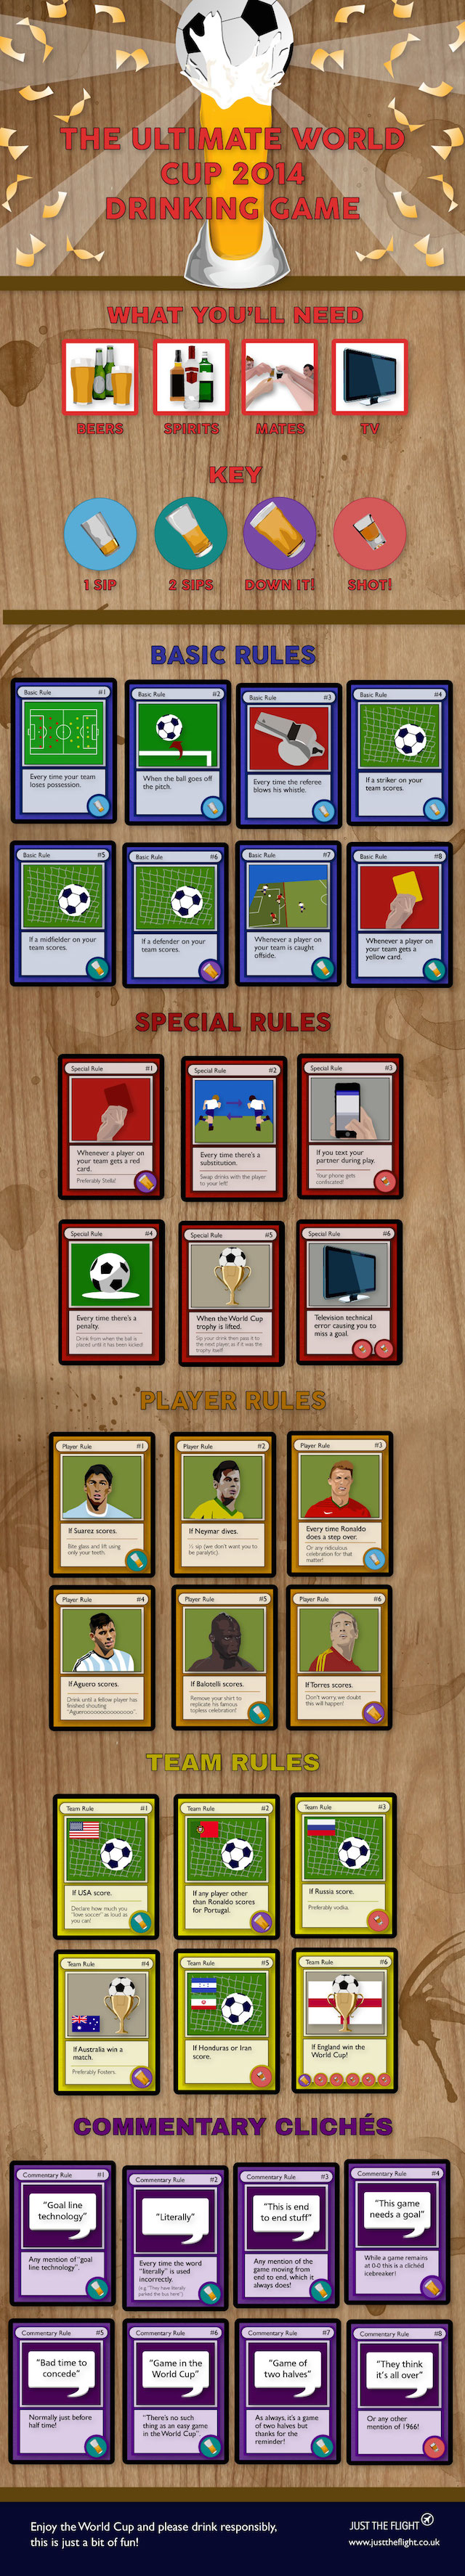 world-cup-2014-drinking-game